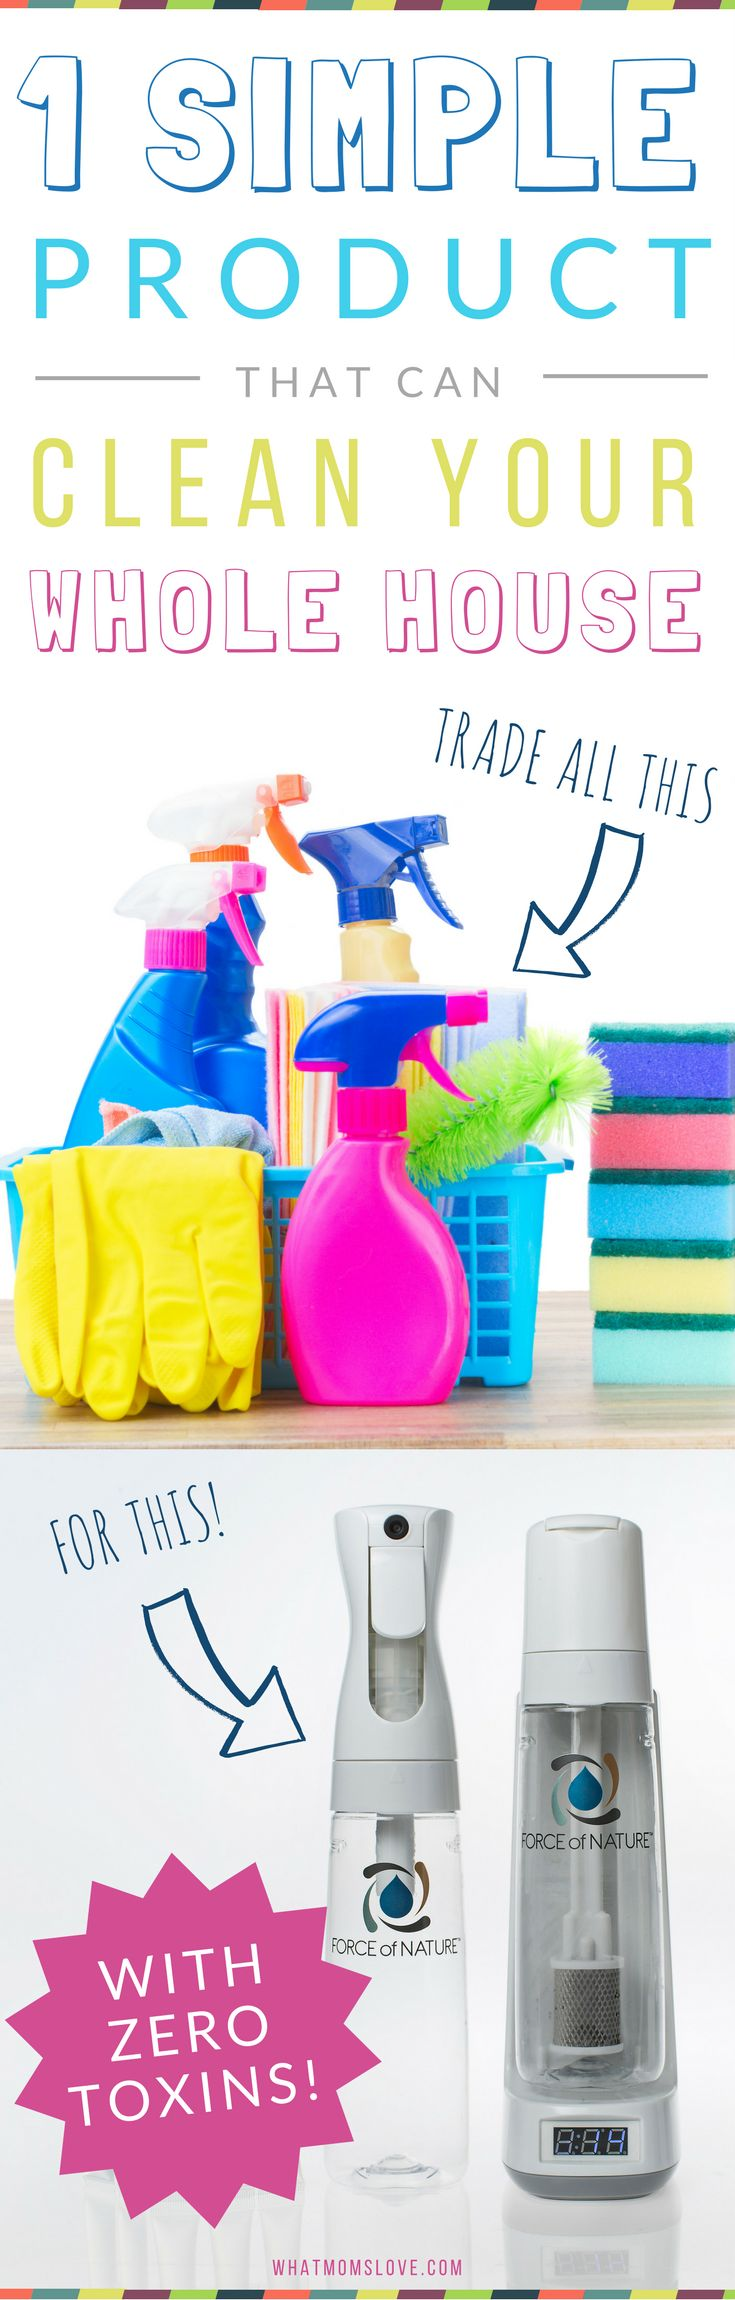 547 Best Cleaning Organization Images On Pinterest Home Sylvanian Families Bott Ant 13 An All Purpose Cleaner With Zero Yes Dangerous Chemicals That Has The Power Of Bleach A Force Nature Indeed